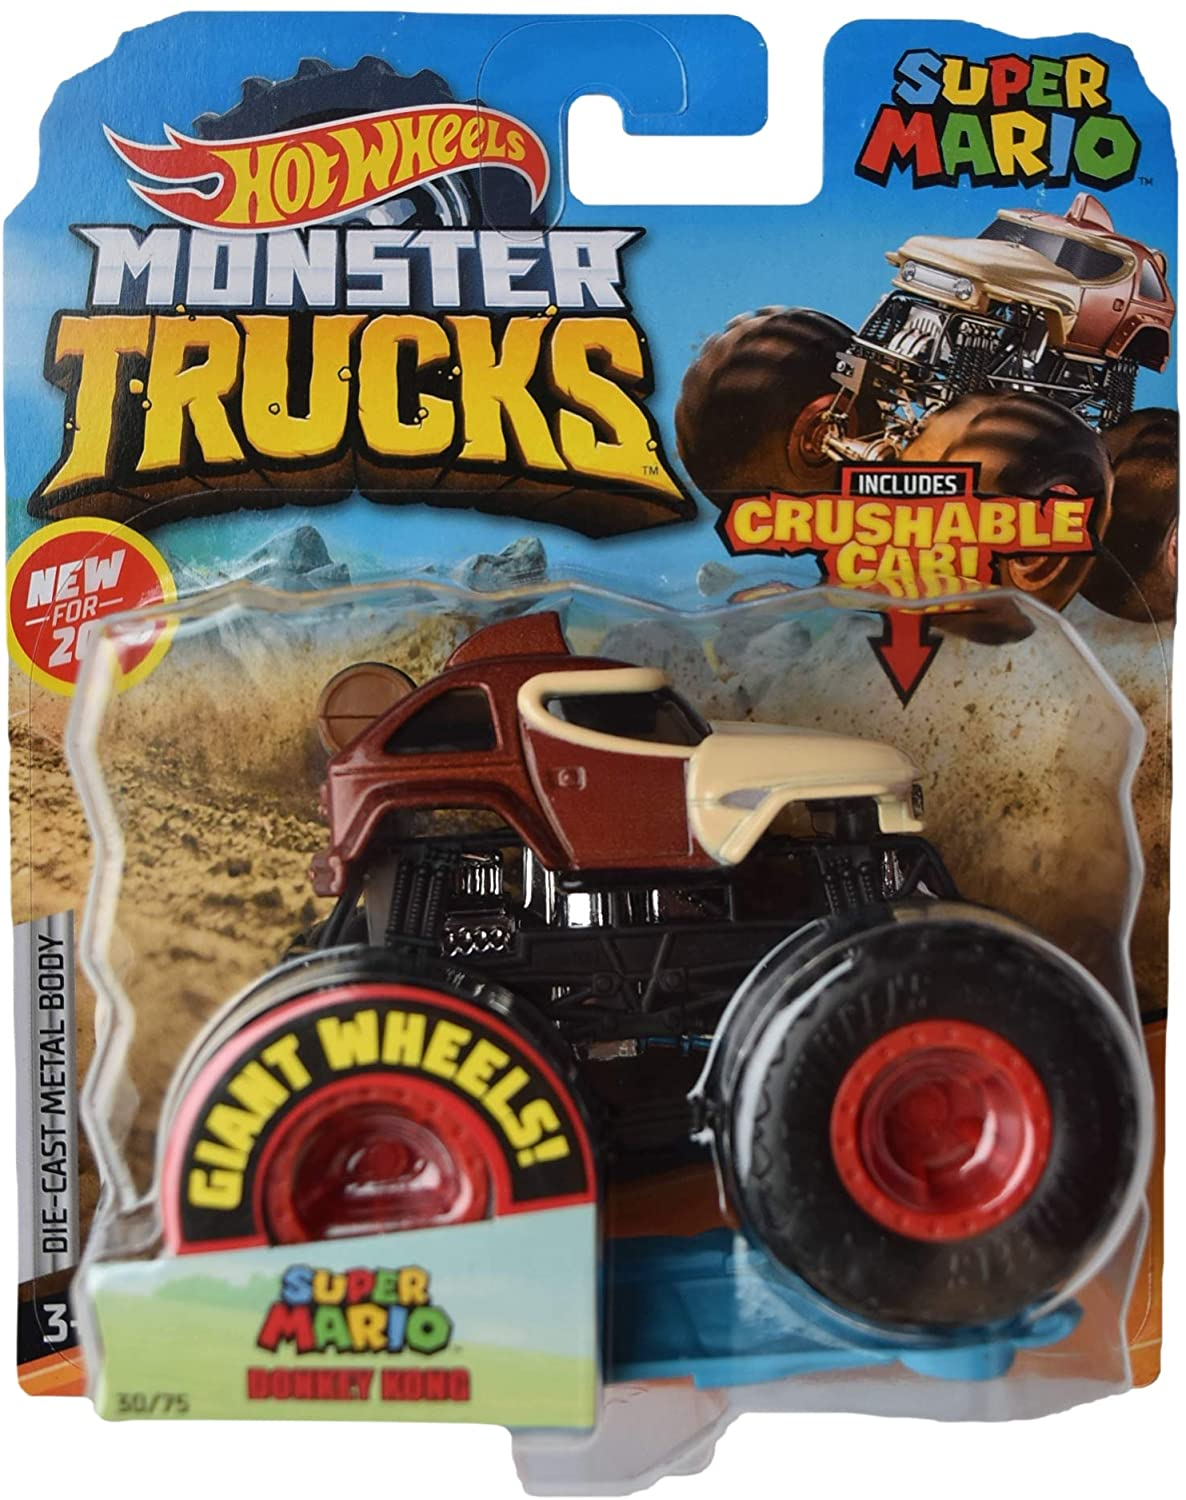 Hot Wheels Monster Trucks 1:64 Scale Super Mario Donkey Kong 30/75 Includes Crushable Car